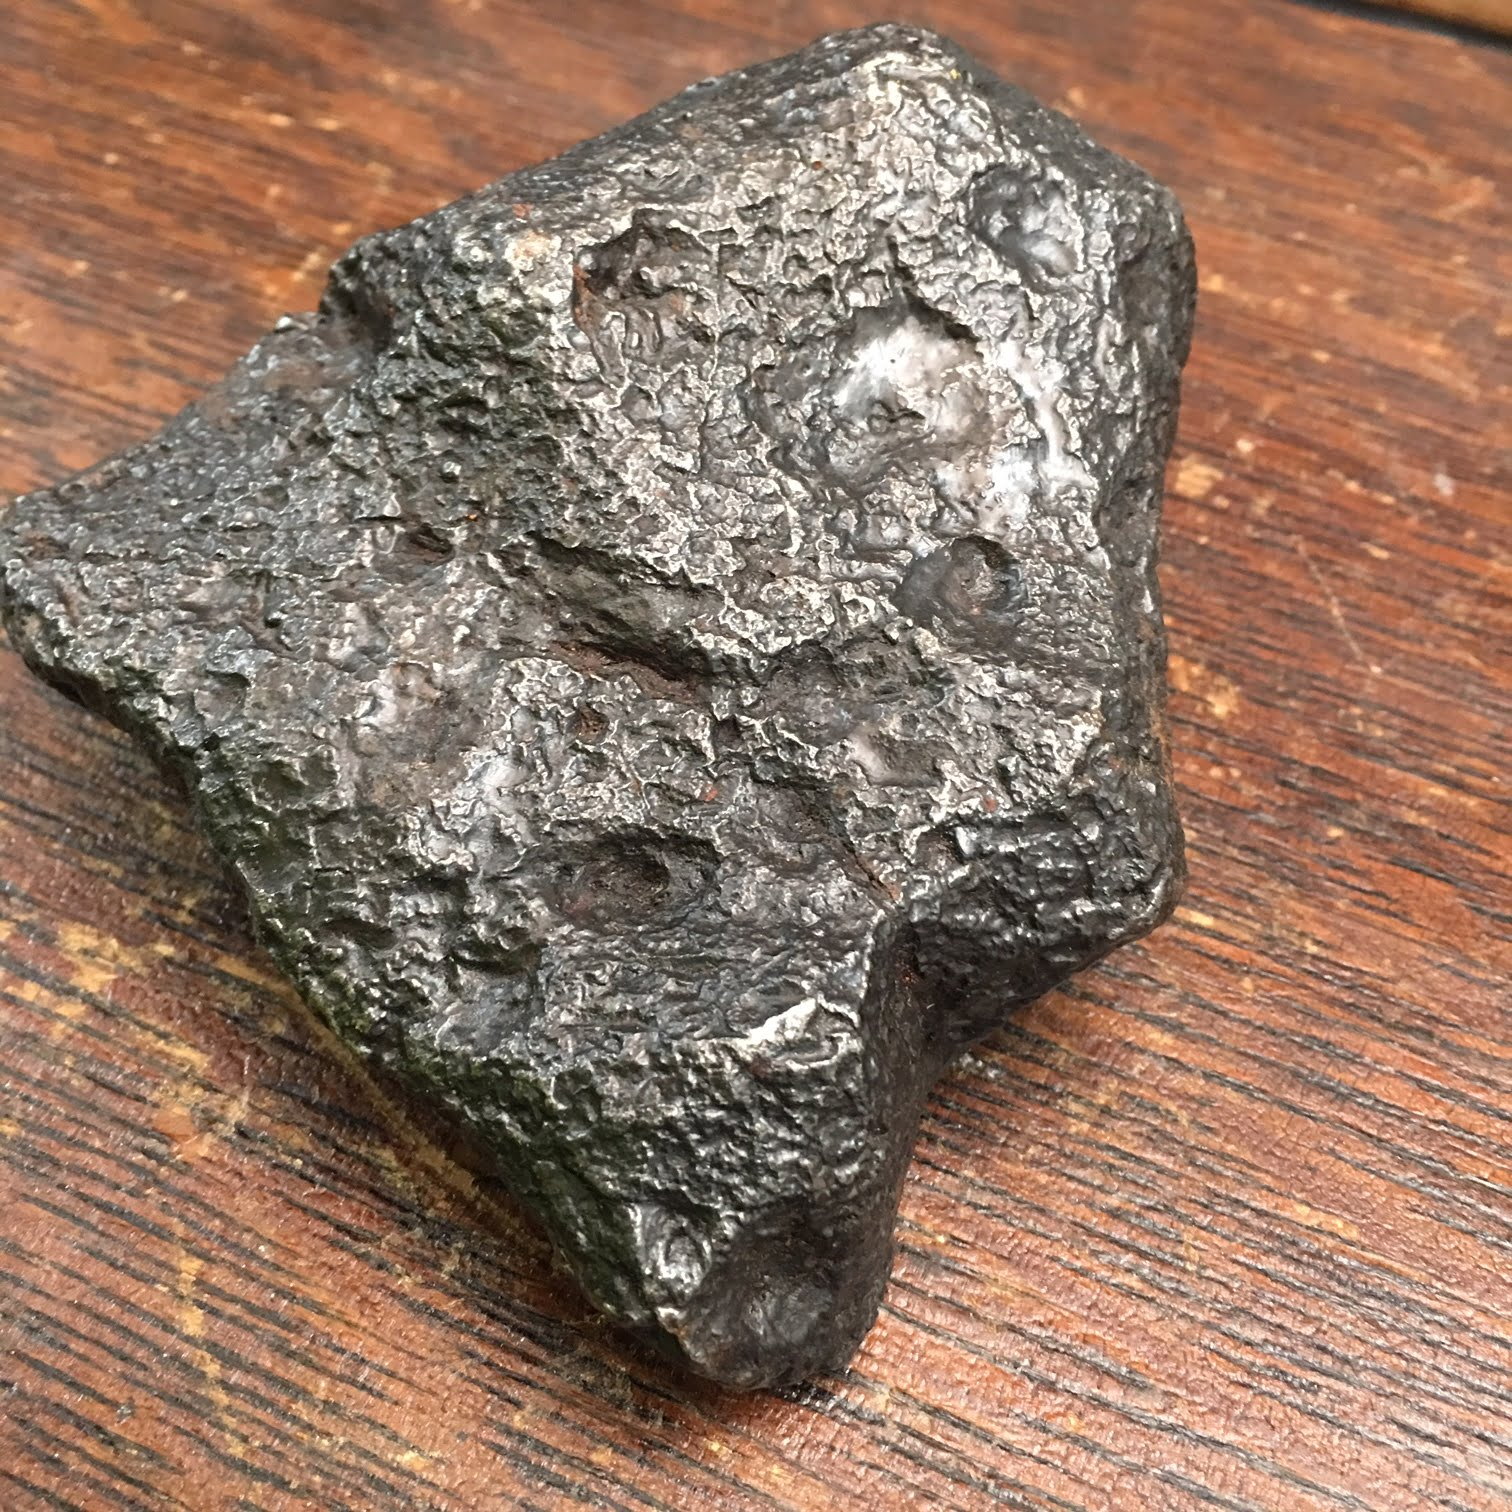 #MCDC1 Huge Beautiful Iron Campo Del Cielo Meteorite from Argentina 2091 g or 4 lbs 9.75 oz